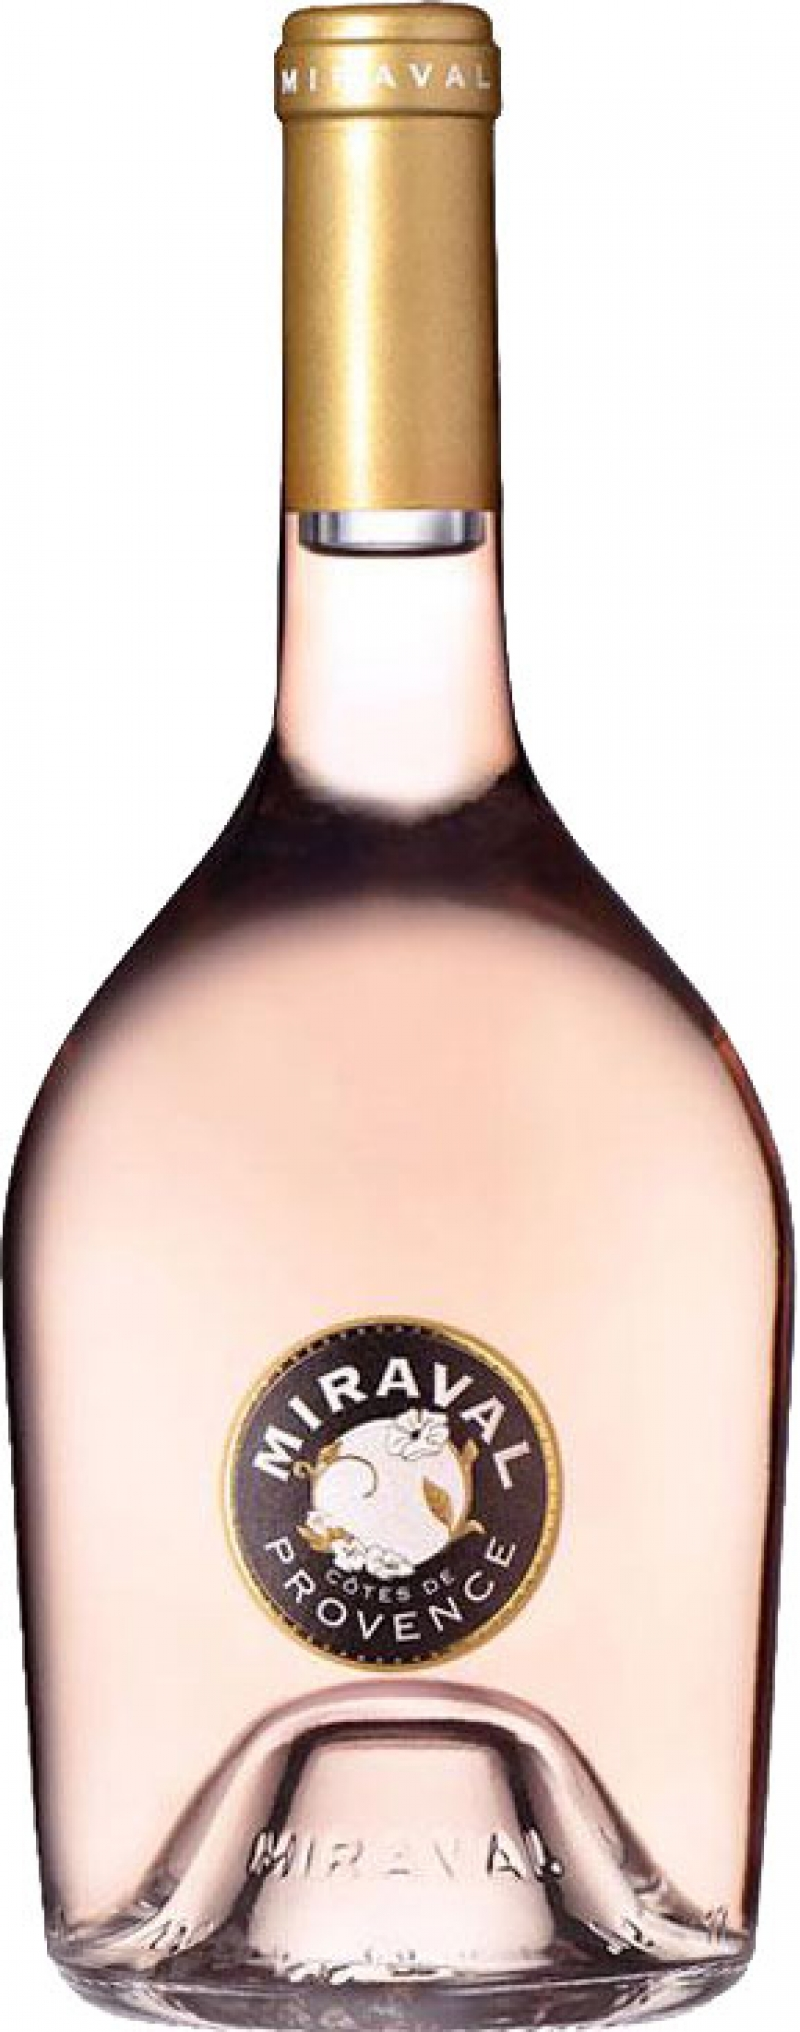 Chateau Miraval - Cotes de Provence Rose 2019 (75cl Bottle)